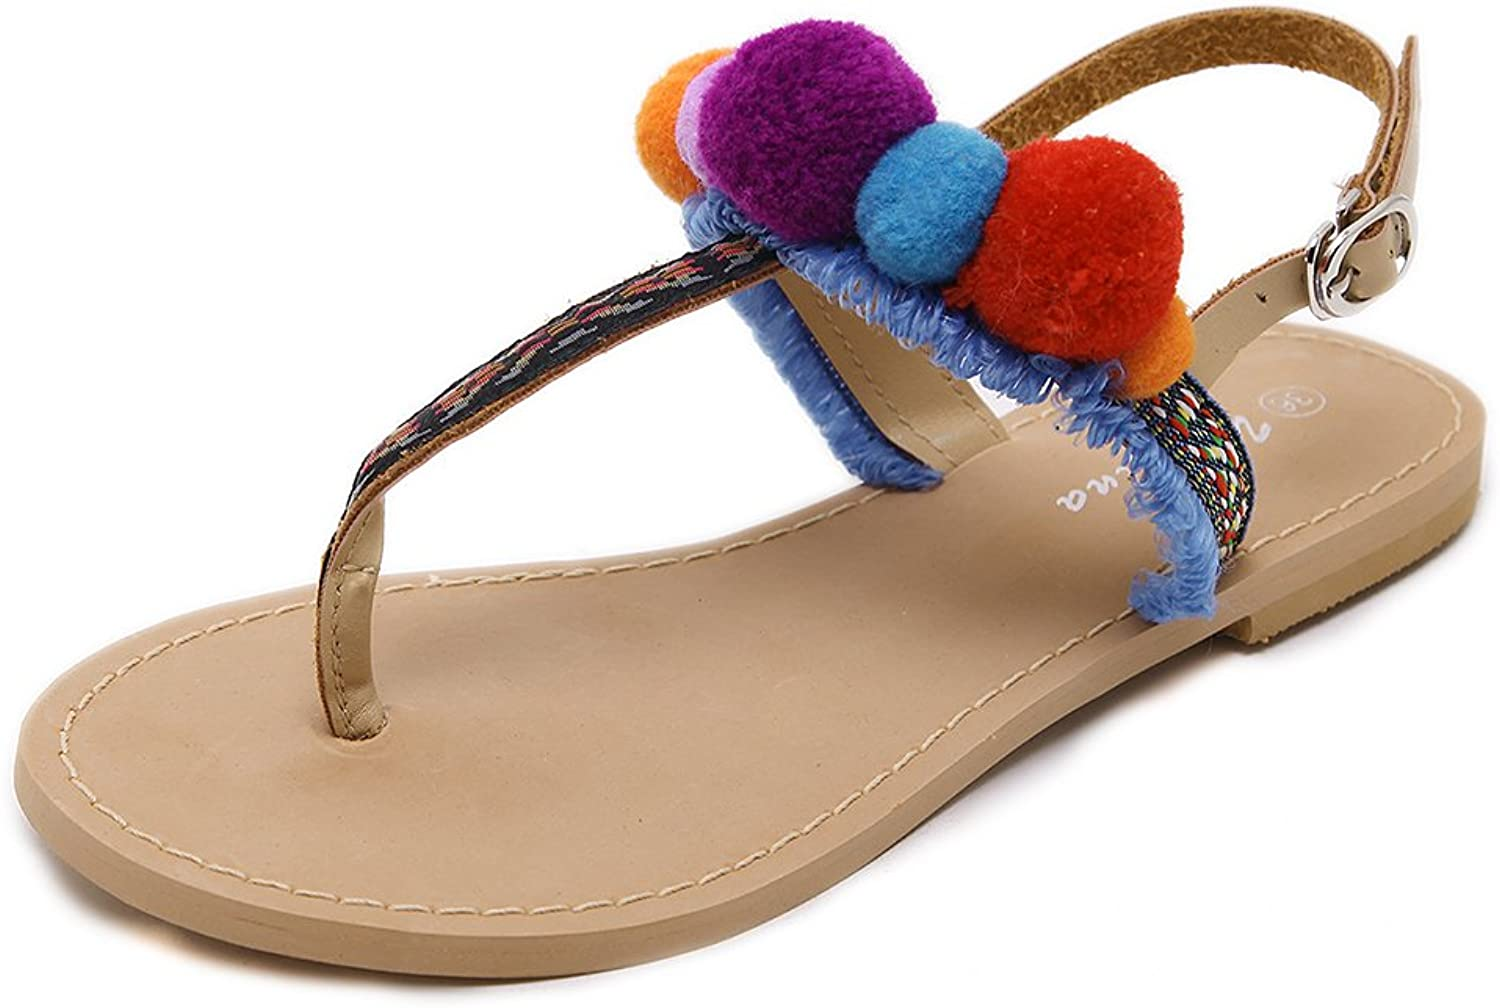 August Jim Women's Bohemian Sandals colorful Pom Pom Embroidery Flat Tassel Flip Flop